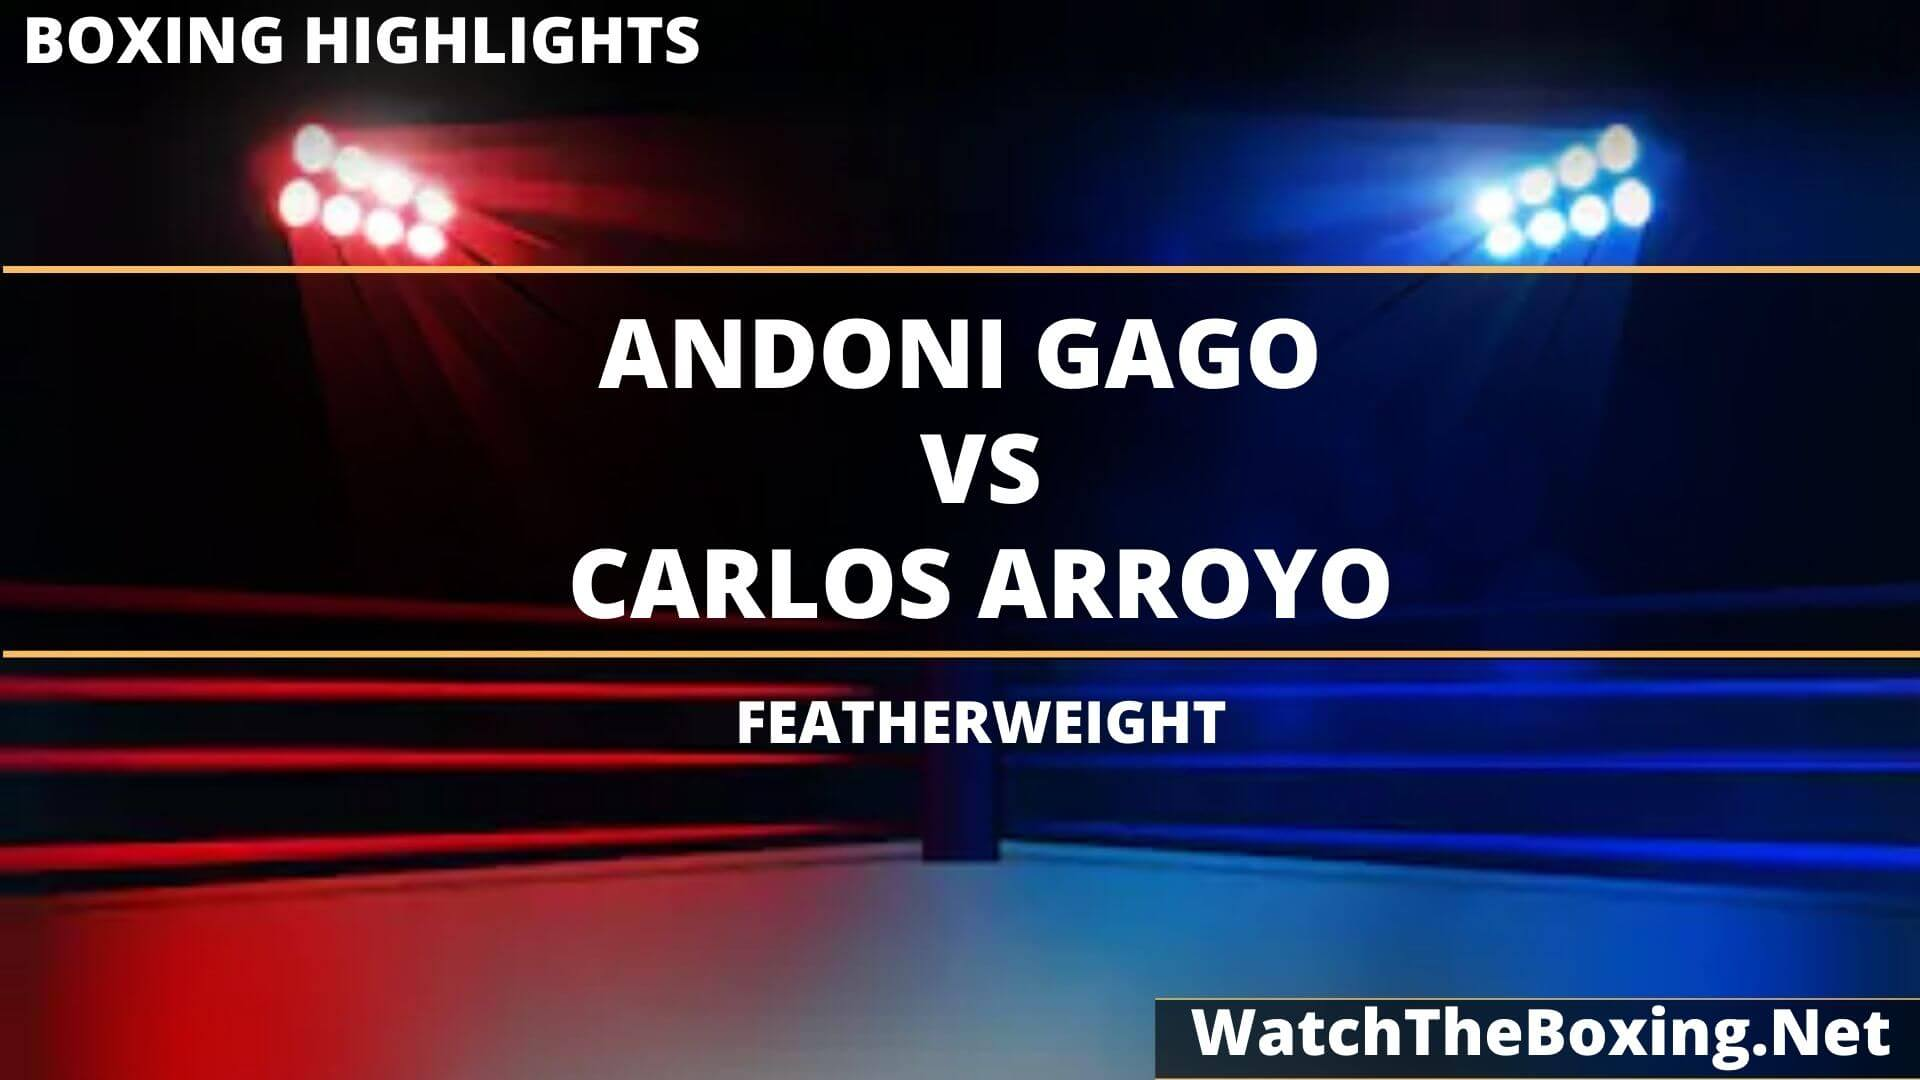 Andoni Gago Vs Carlos Arroyo Highlights 2020